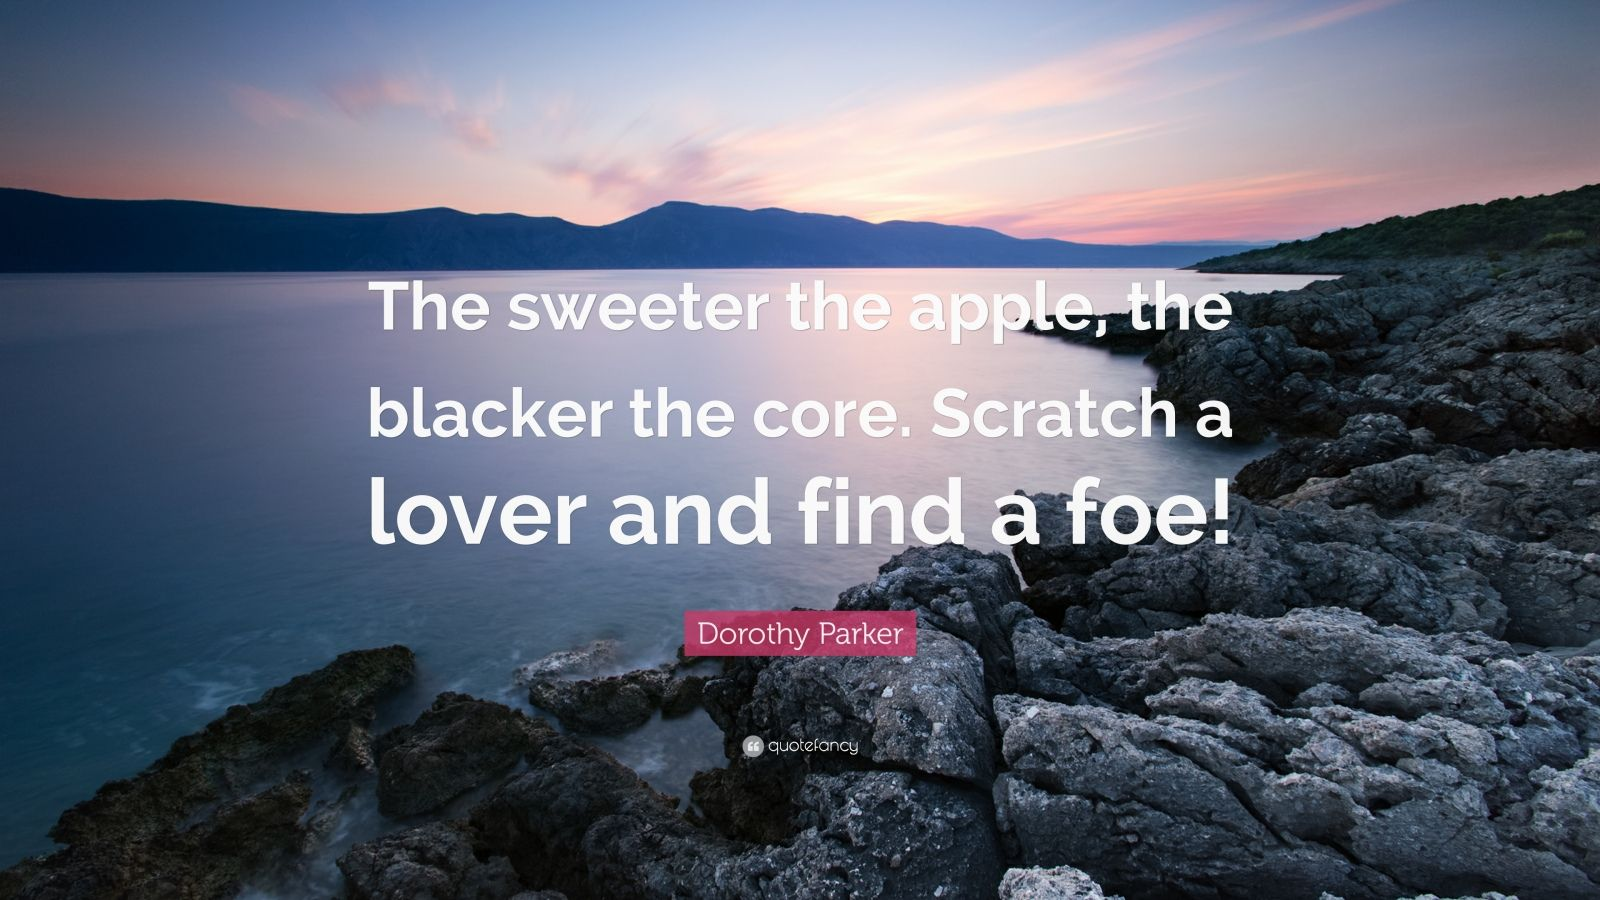 """Dorothy Parker Quote: """"The sweeter the apple, the blacker the core. Scratch a lover and find a foe!"""""""